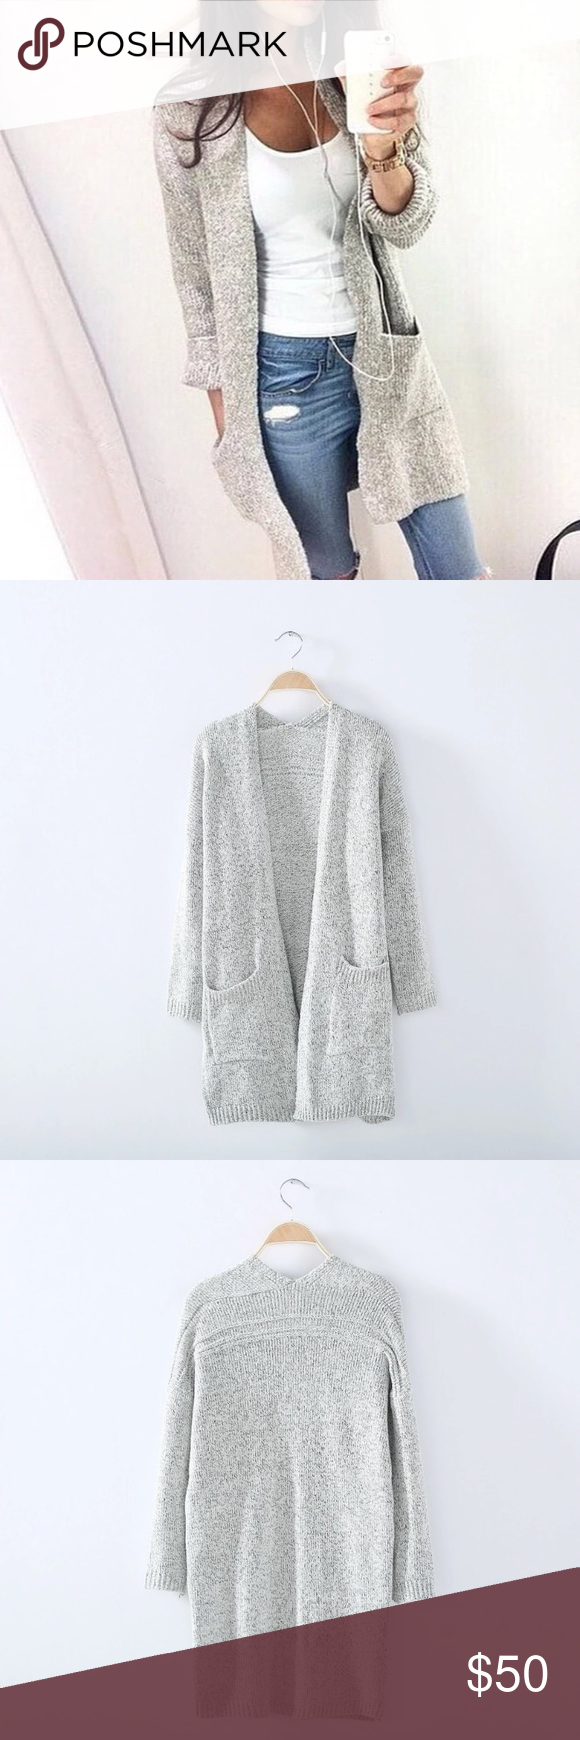 SALE TODAY ONLYChunky Marled Knit Cardigan | 120 lbs, Cable knit ...